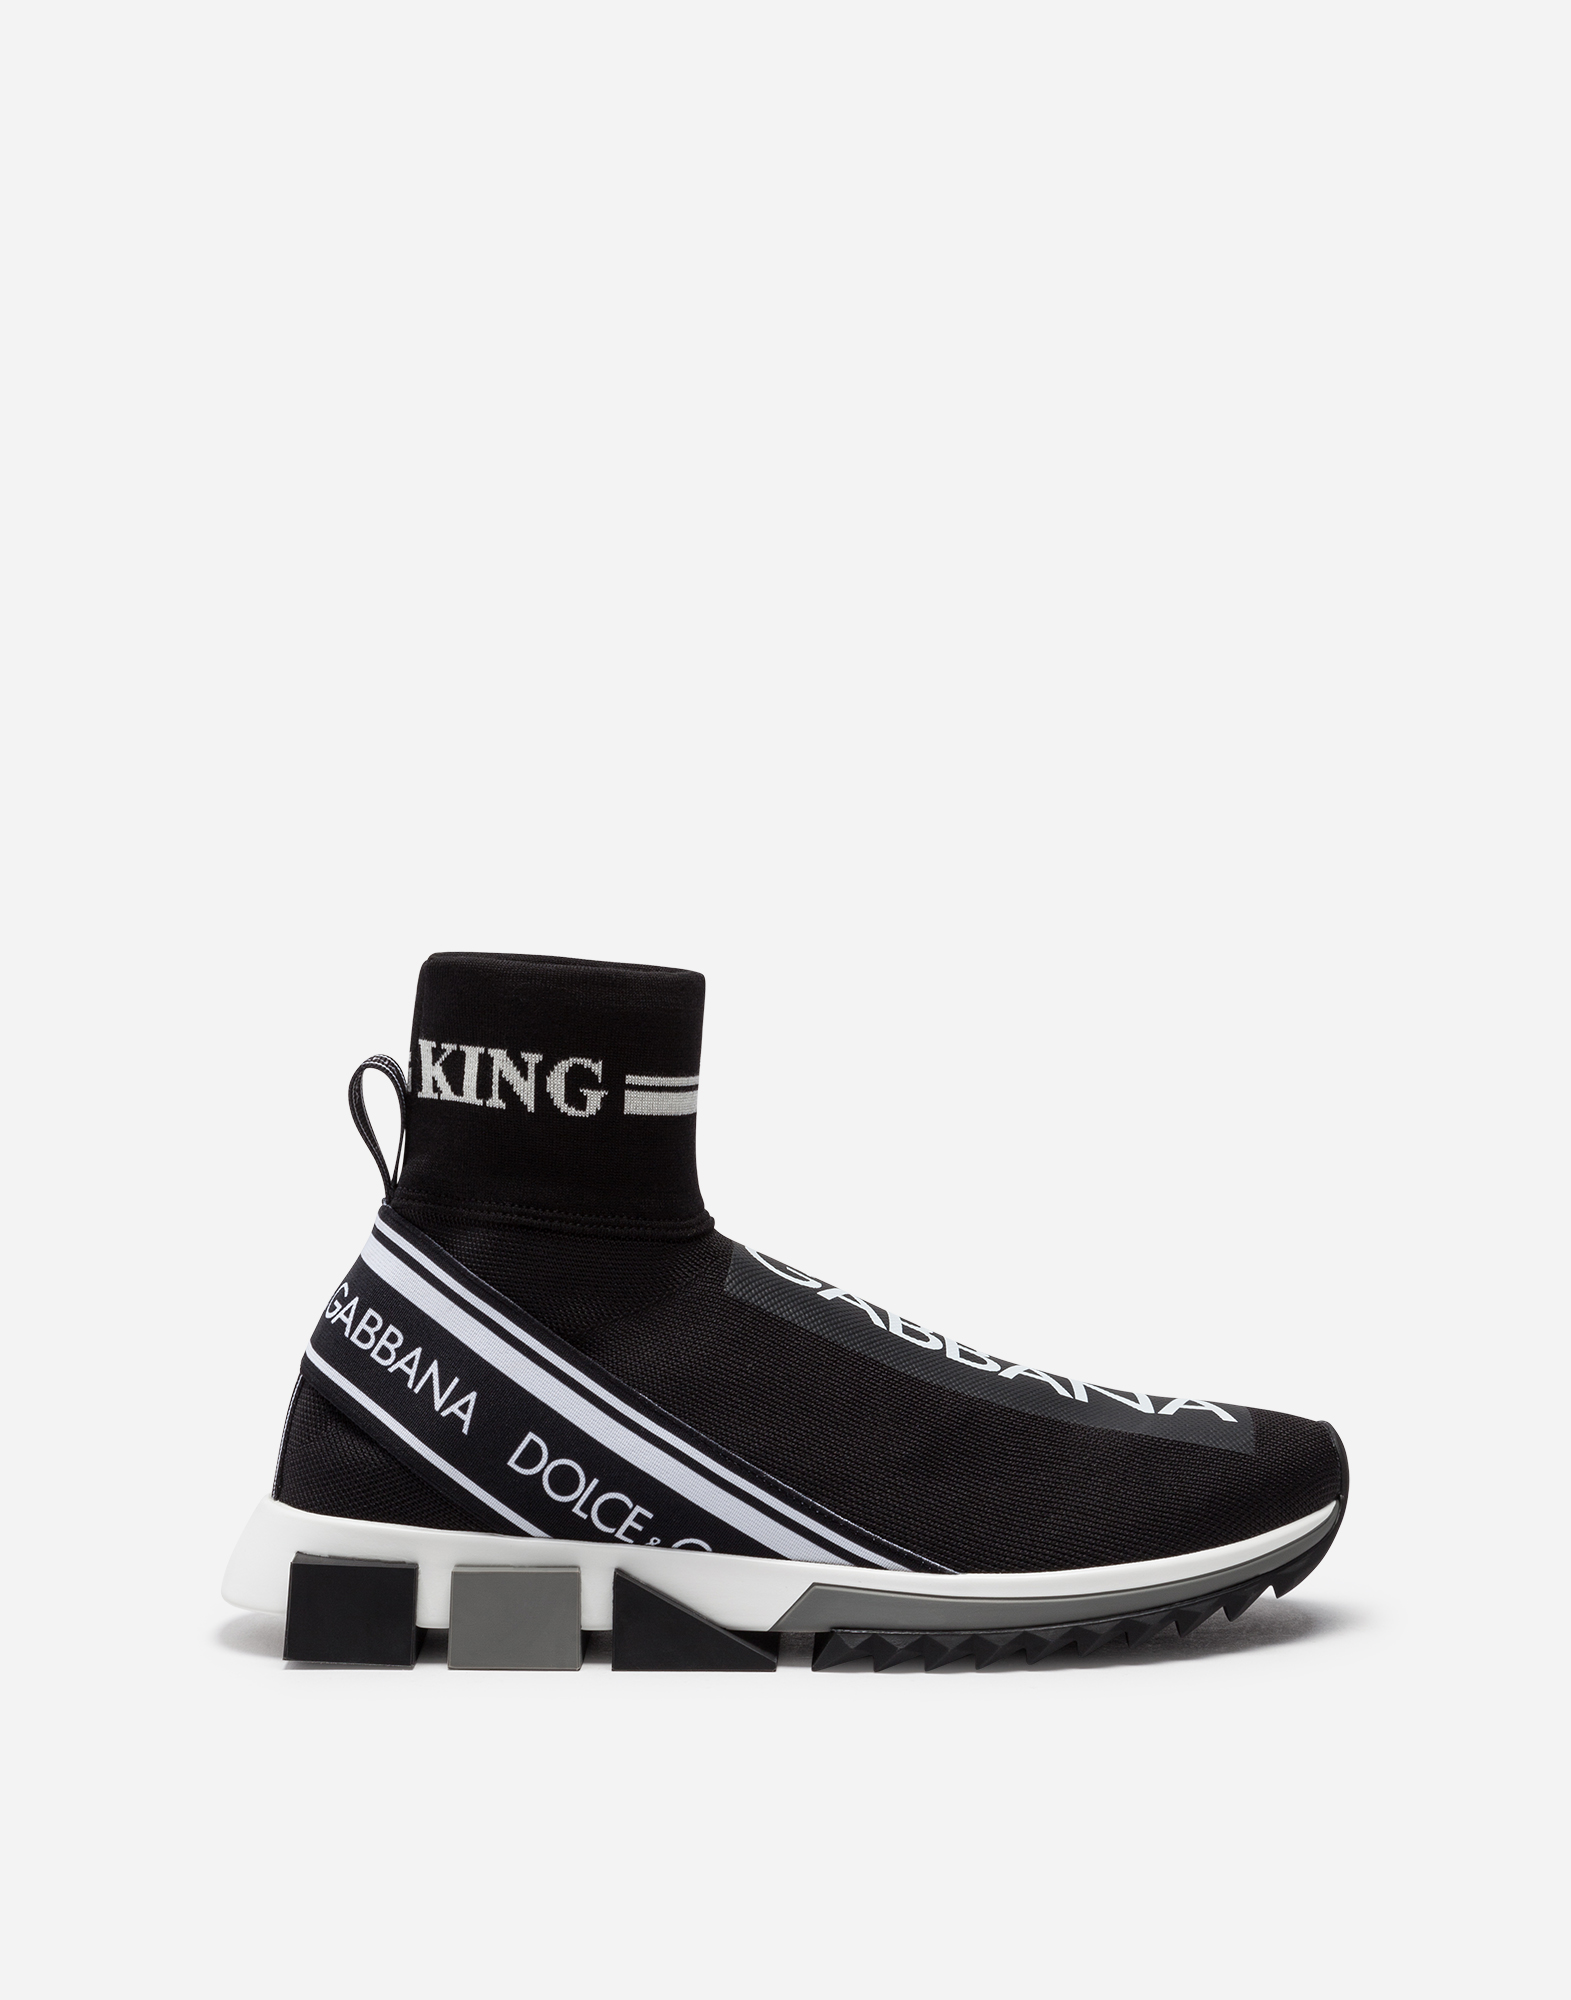 Dolce & Gabbana HIGH-TOP SORRENTO SNEAKERS IN STRETCH MESH WITH LOGO